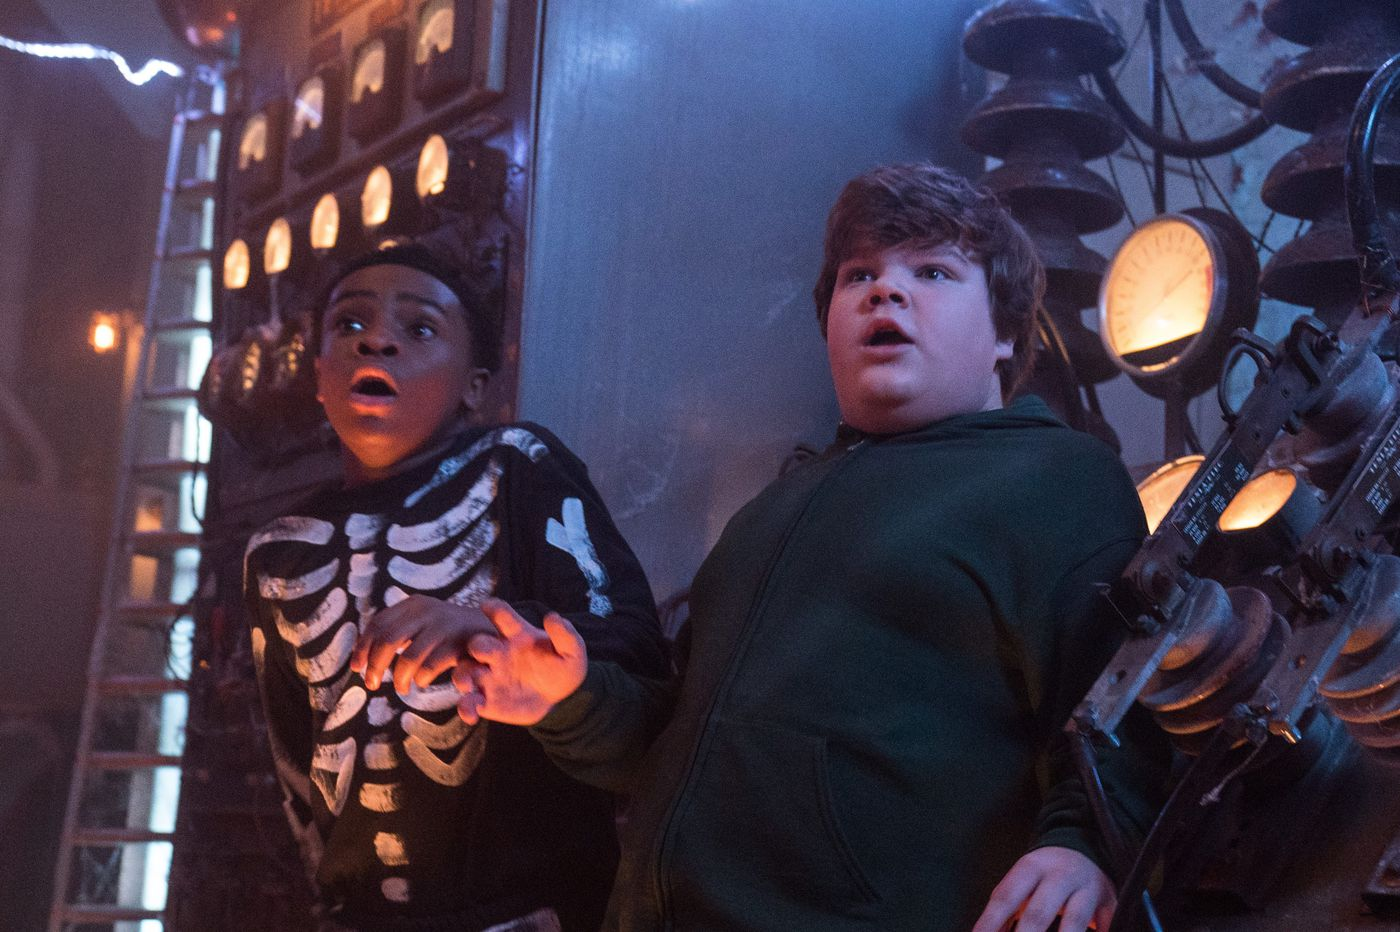 'Goosebumps 2: Haunted Halloween': Viewer beware, you're not in for a scare